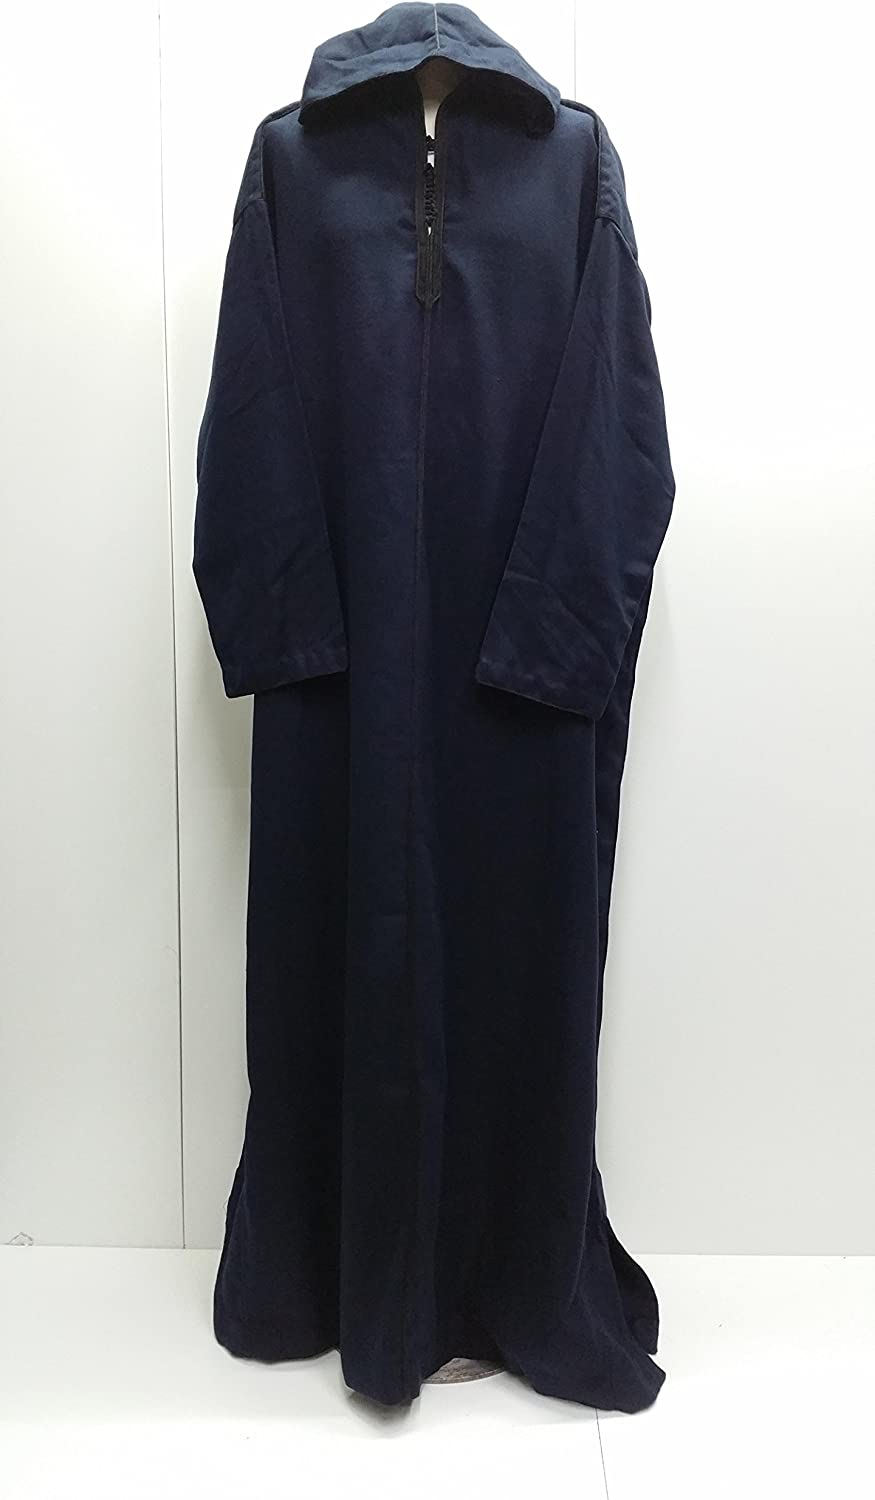 Size 64 Men Mgoldccan Wool Hooded Long Sleeves thobes.Wool Thobe- Navy bluee